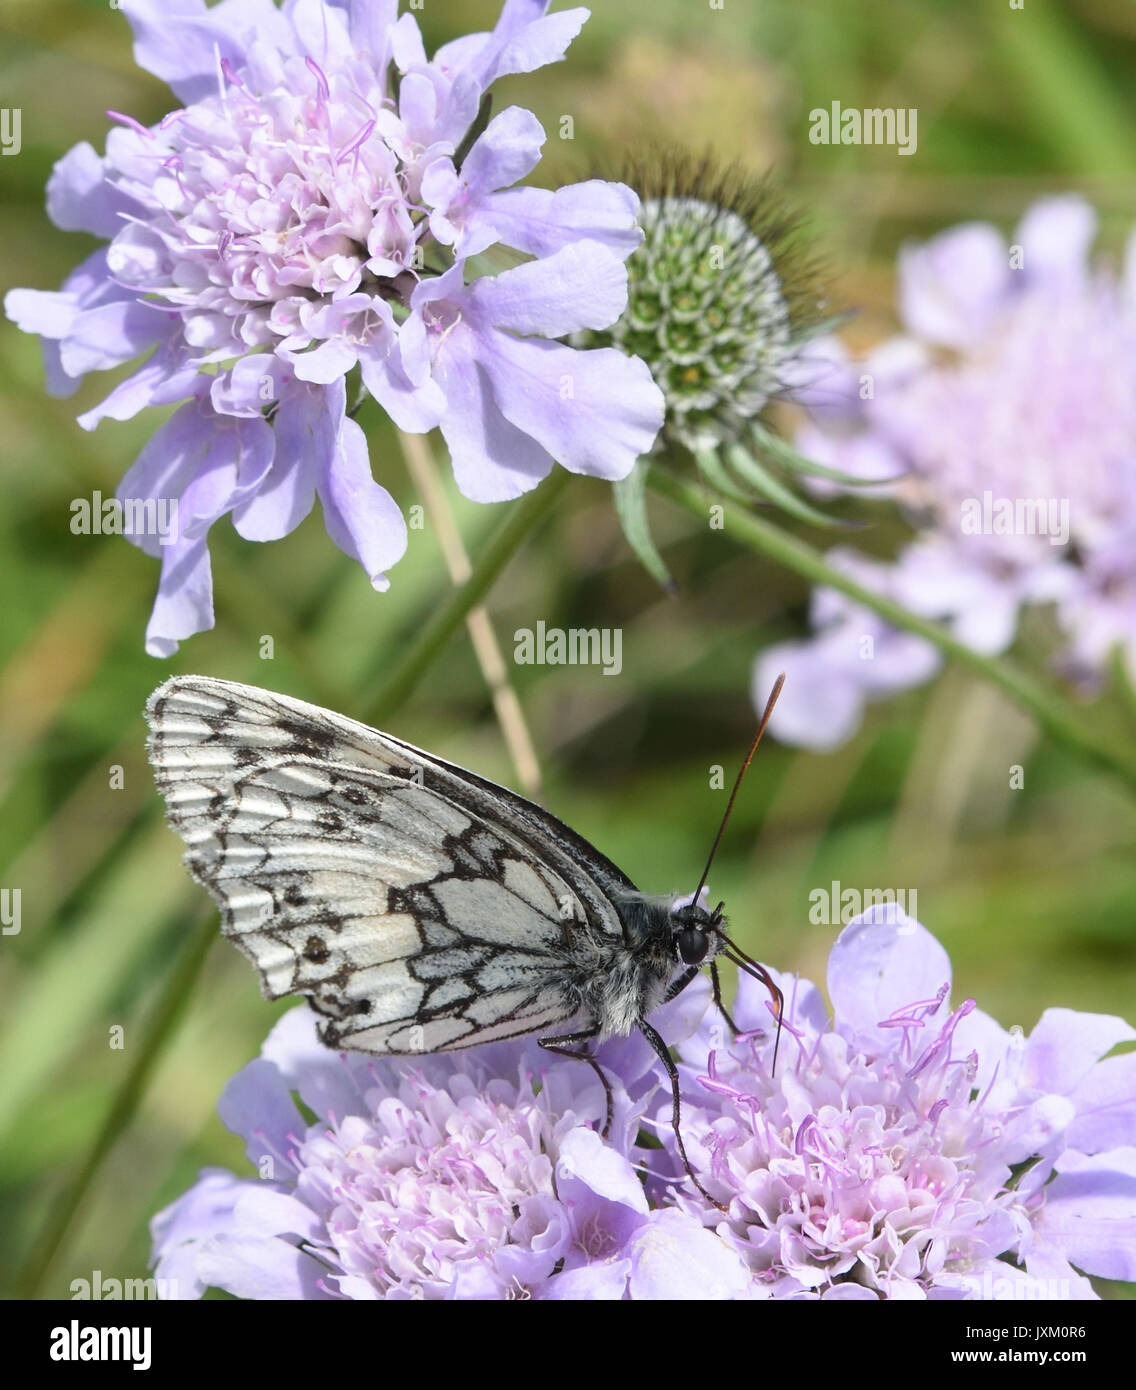 A black and white marbled white butterfly (Melanargia galathea) with closed wings takes nectar from a Field Scabious flower (Knautia arvensis). - Stock Image